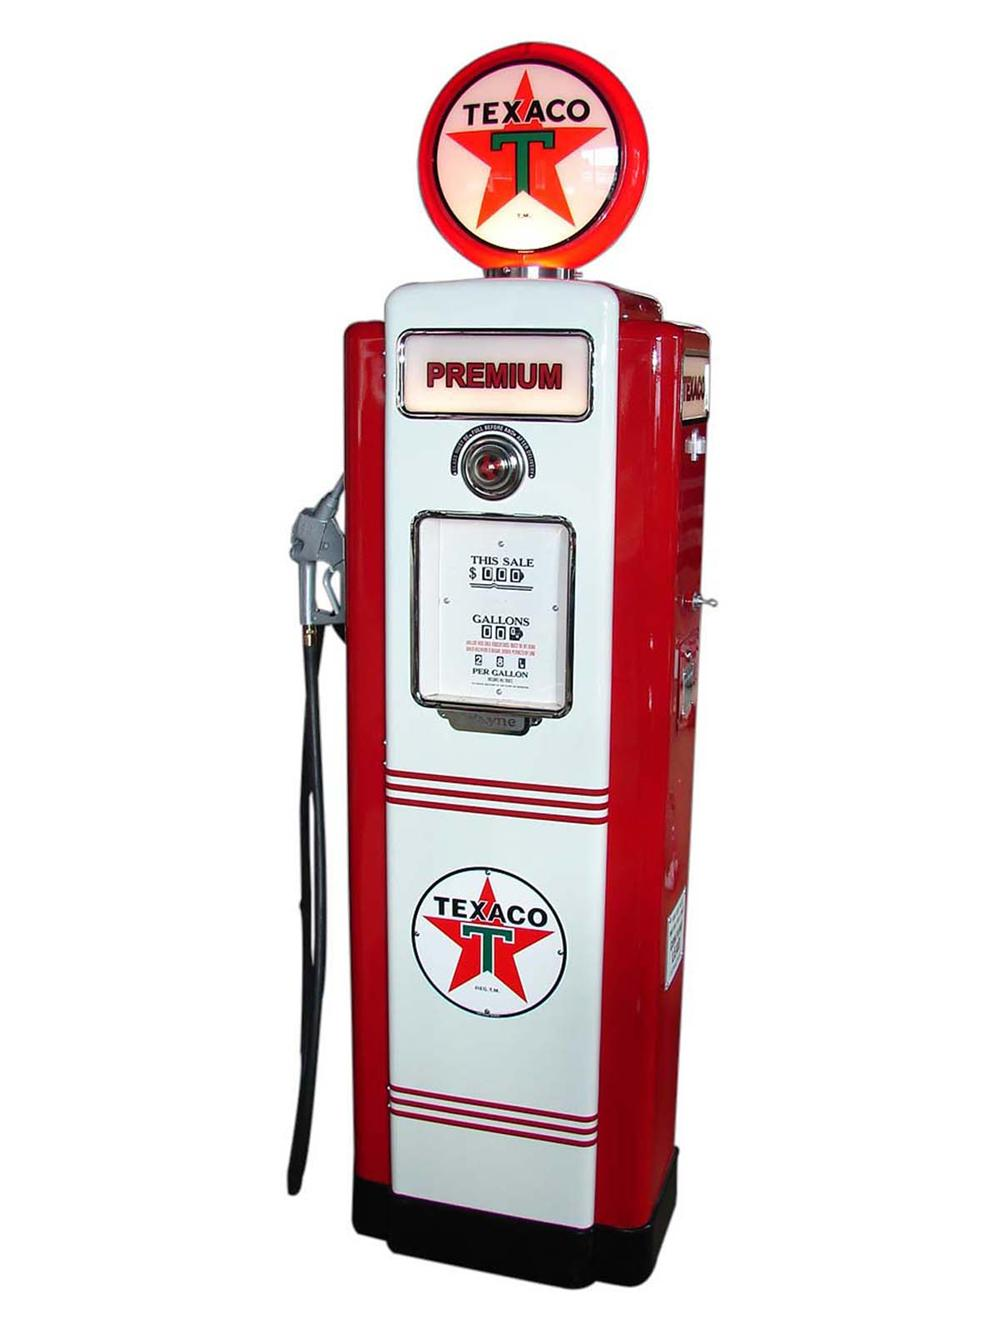 Incredibly restored 1948 Texaco Oil Wayne model #70 restored service station pump. - Front 3/4 - 113017